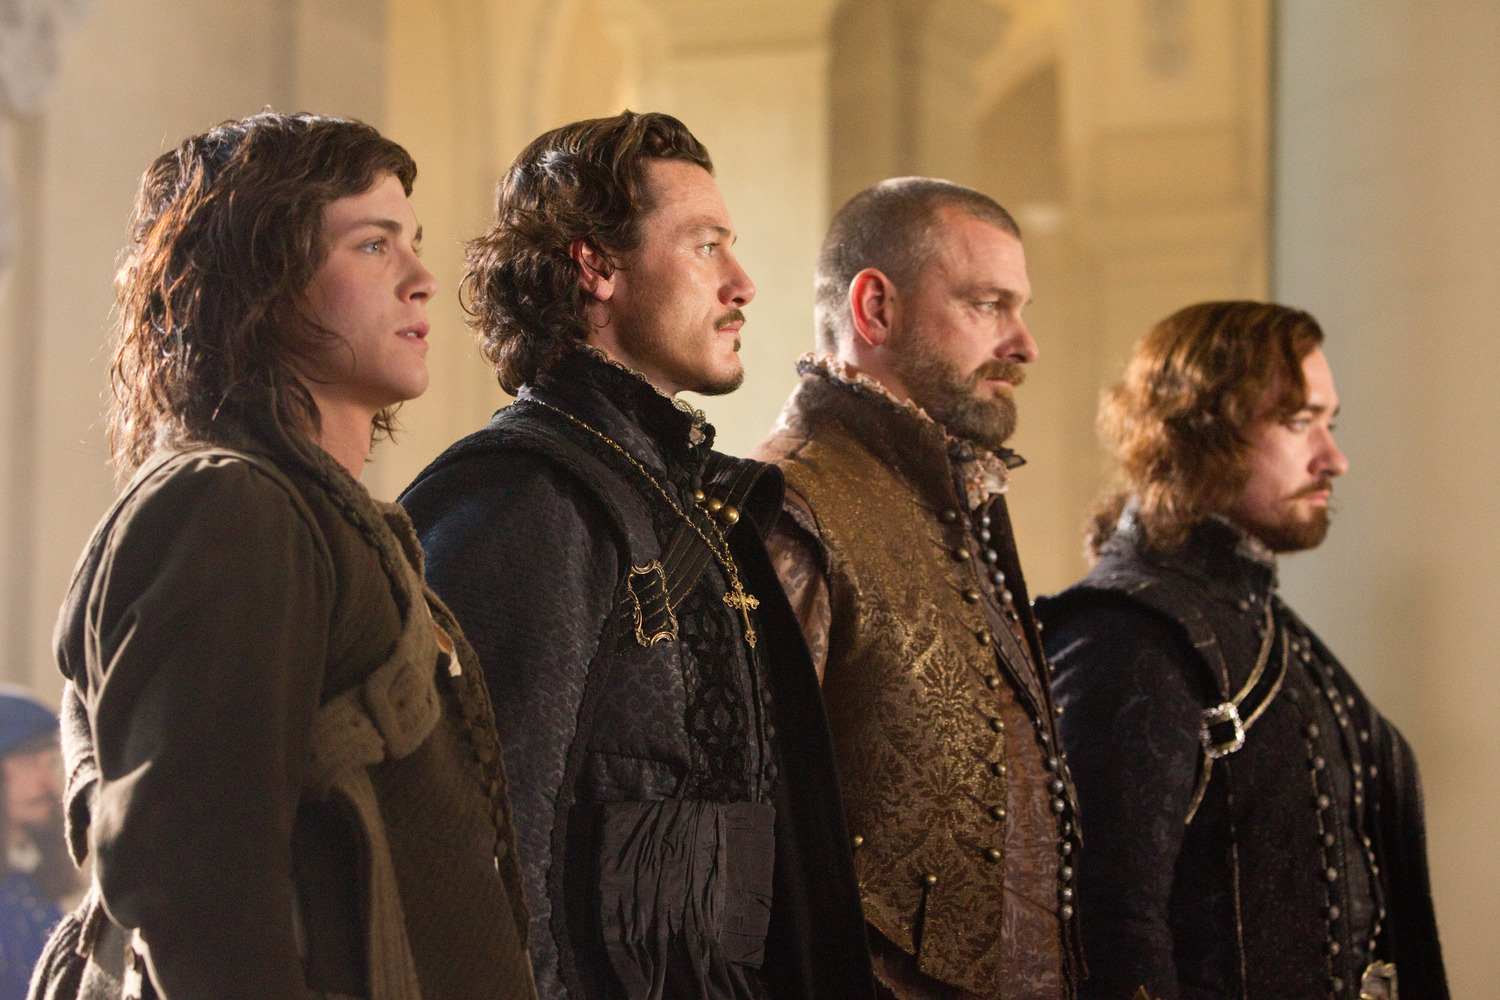 les-trois-mousquetaires-the-three-musketeers-12-10-2011-21-10-2011-7-g.jpg